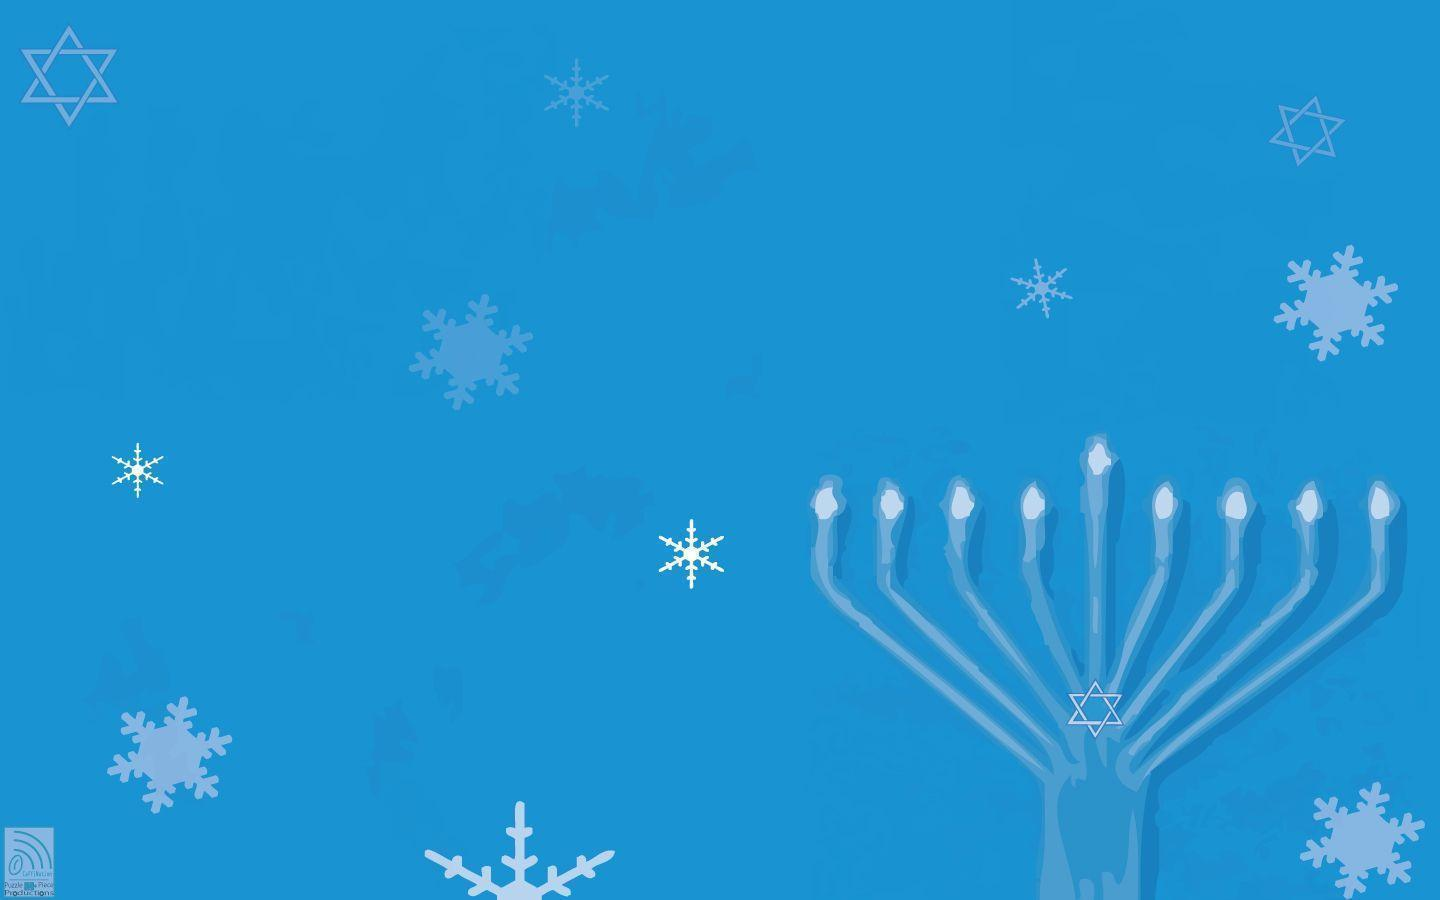 Hanukkah Wallpapers 1440x900